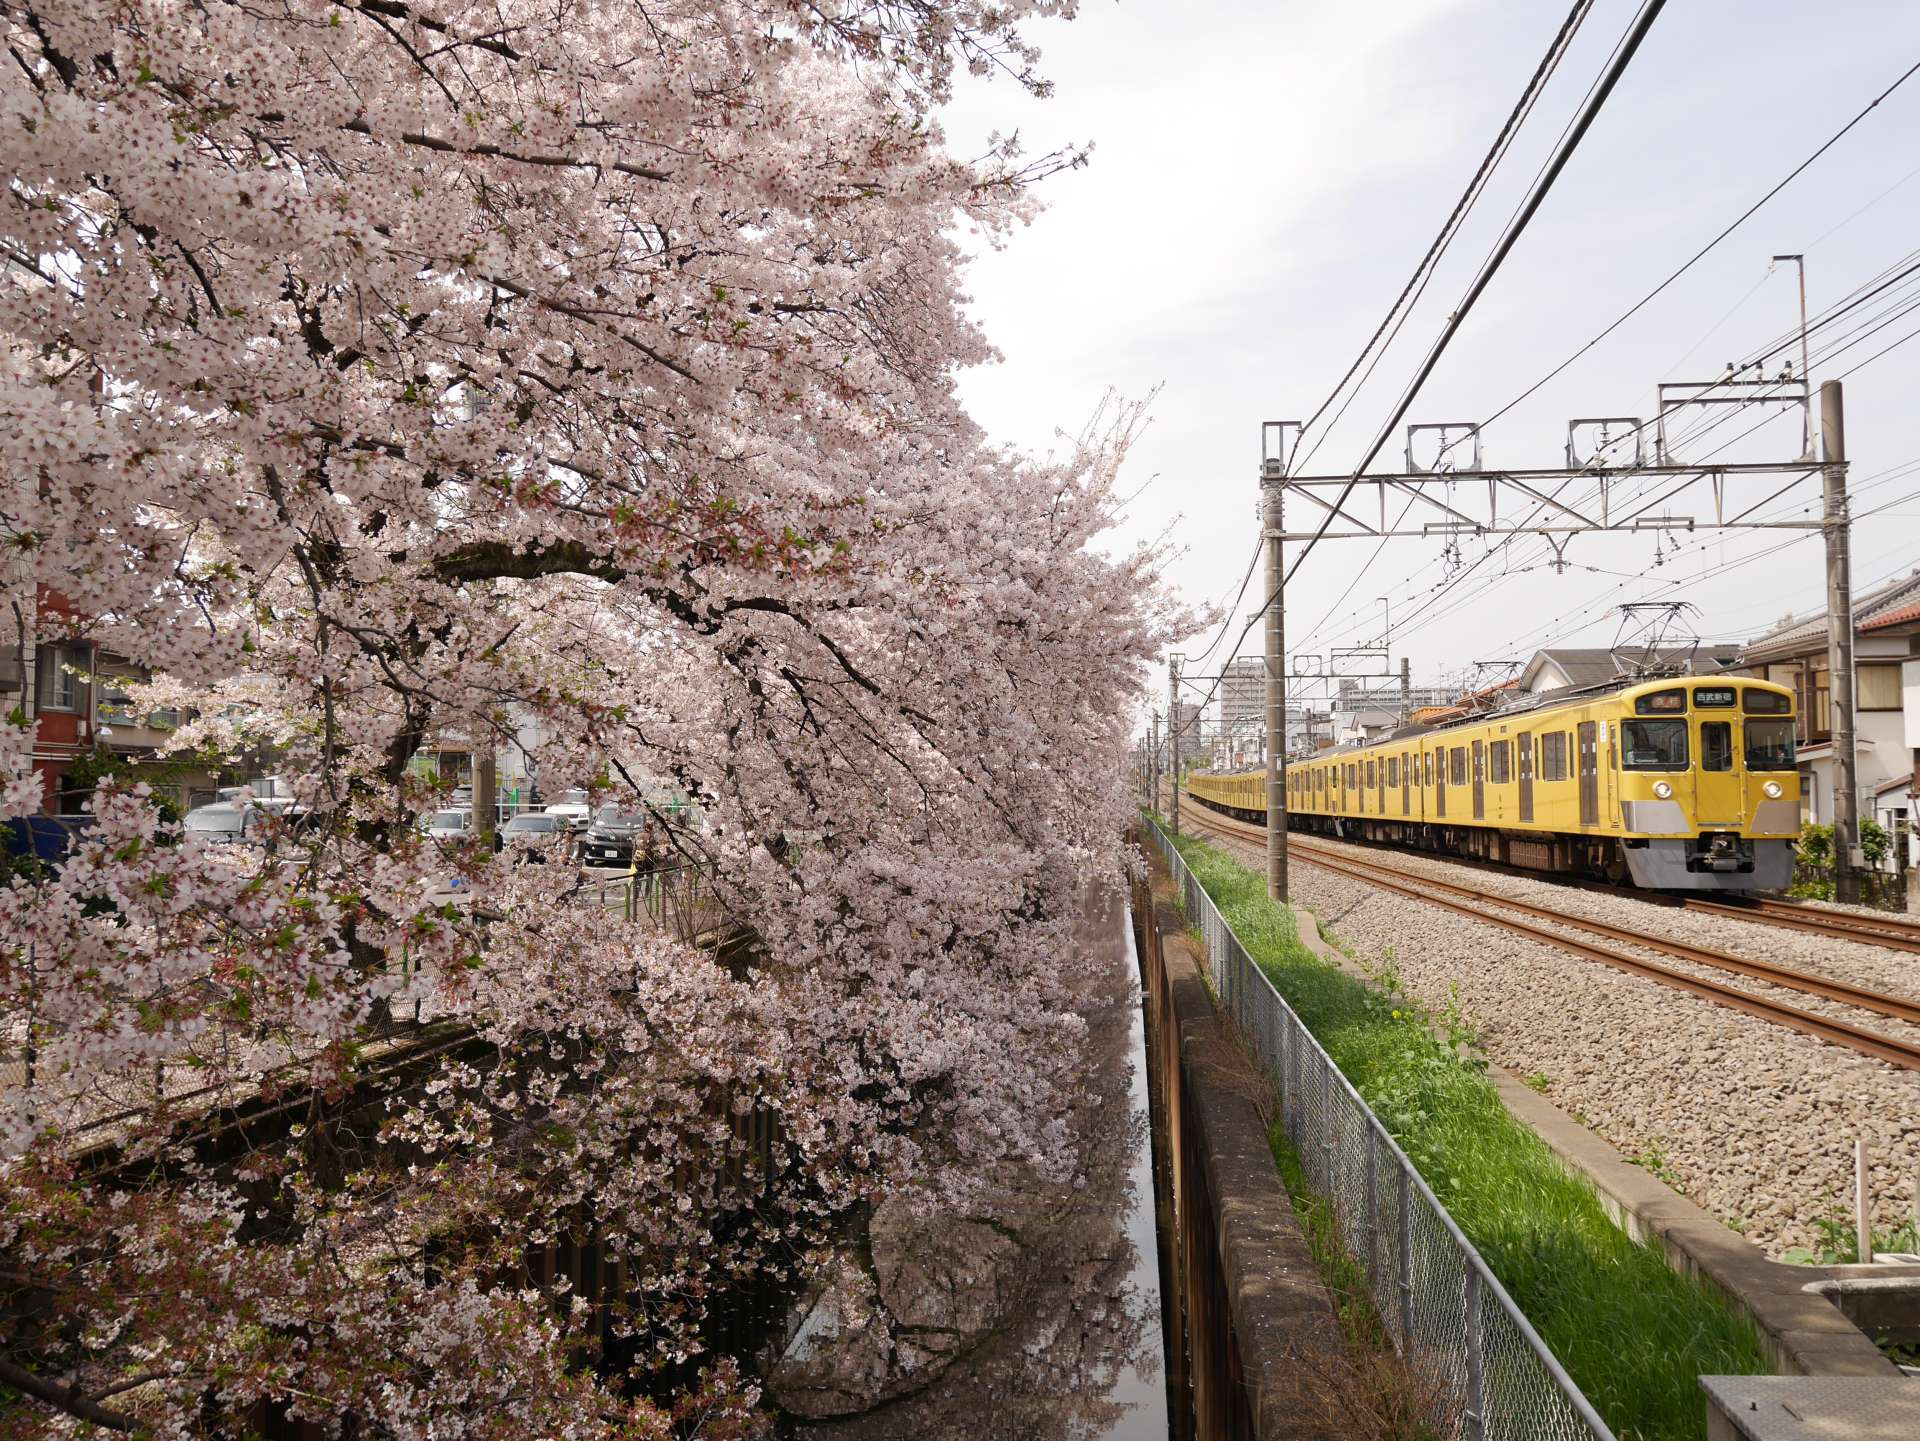 Charming scenery of trains passing cherry blossoms